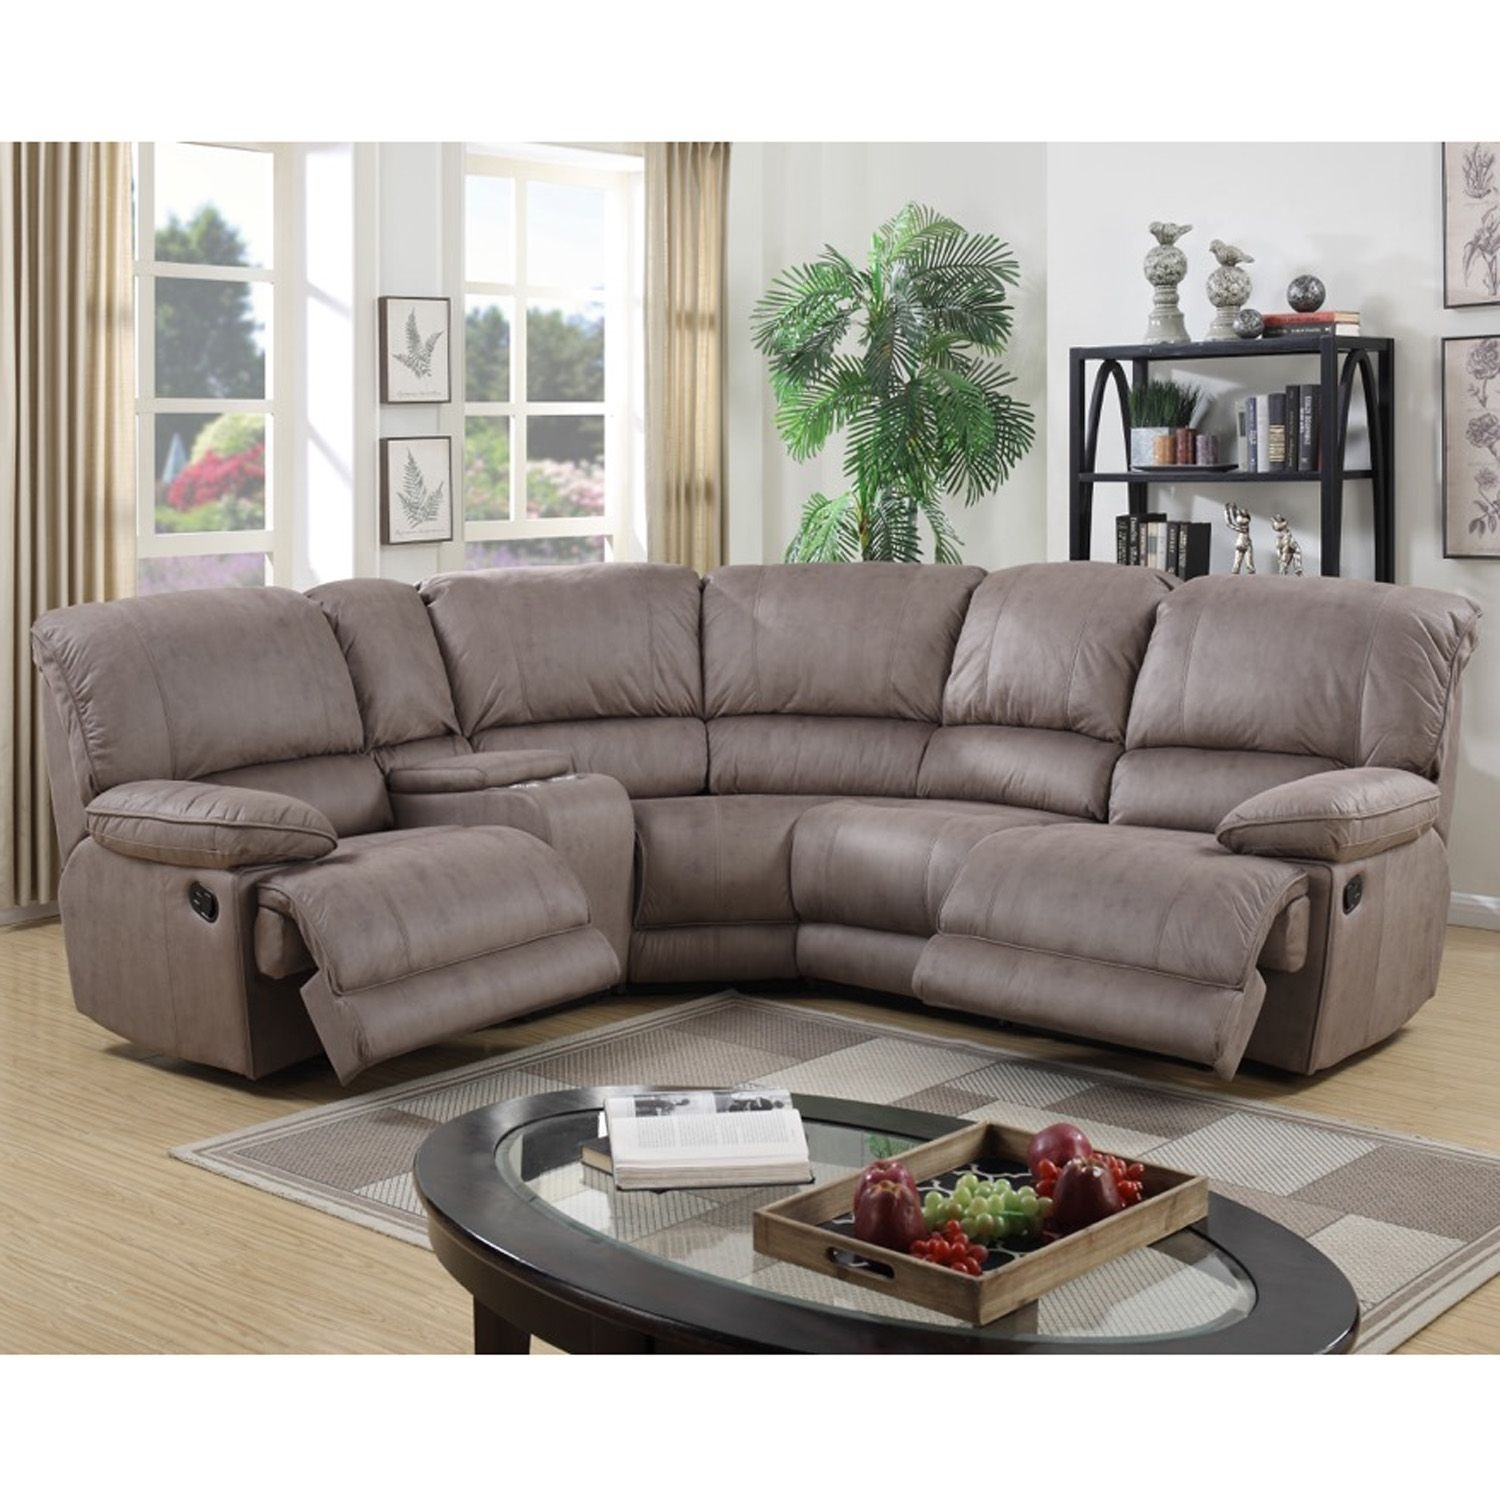 The Falkon Recliner Corner Sofa Is An Impressive And Stylish Suite with Marcus Chocolate 6 Piece Sectionals With Power Headrest And Usb (Image 28 of 30)